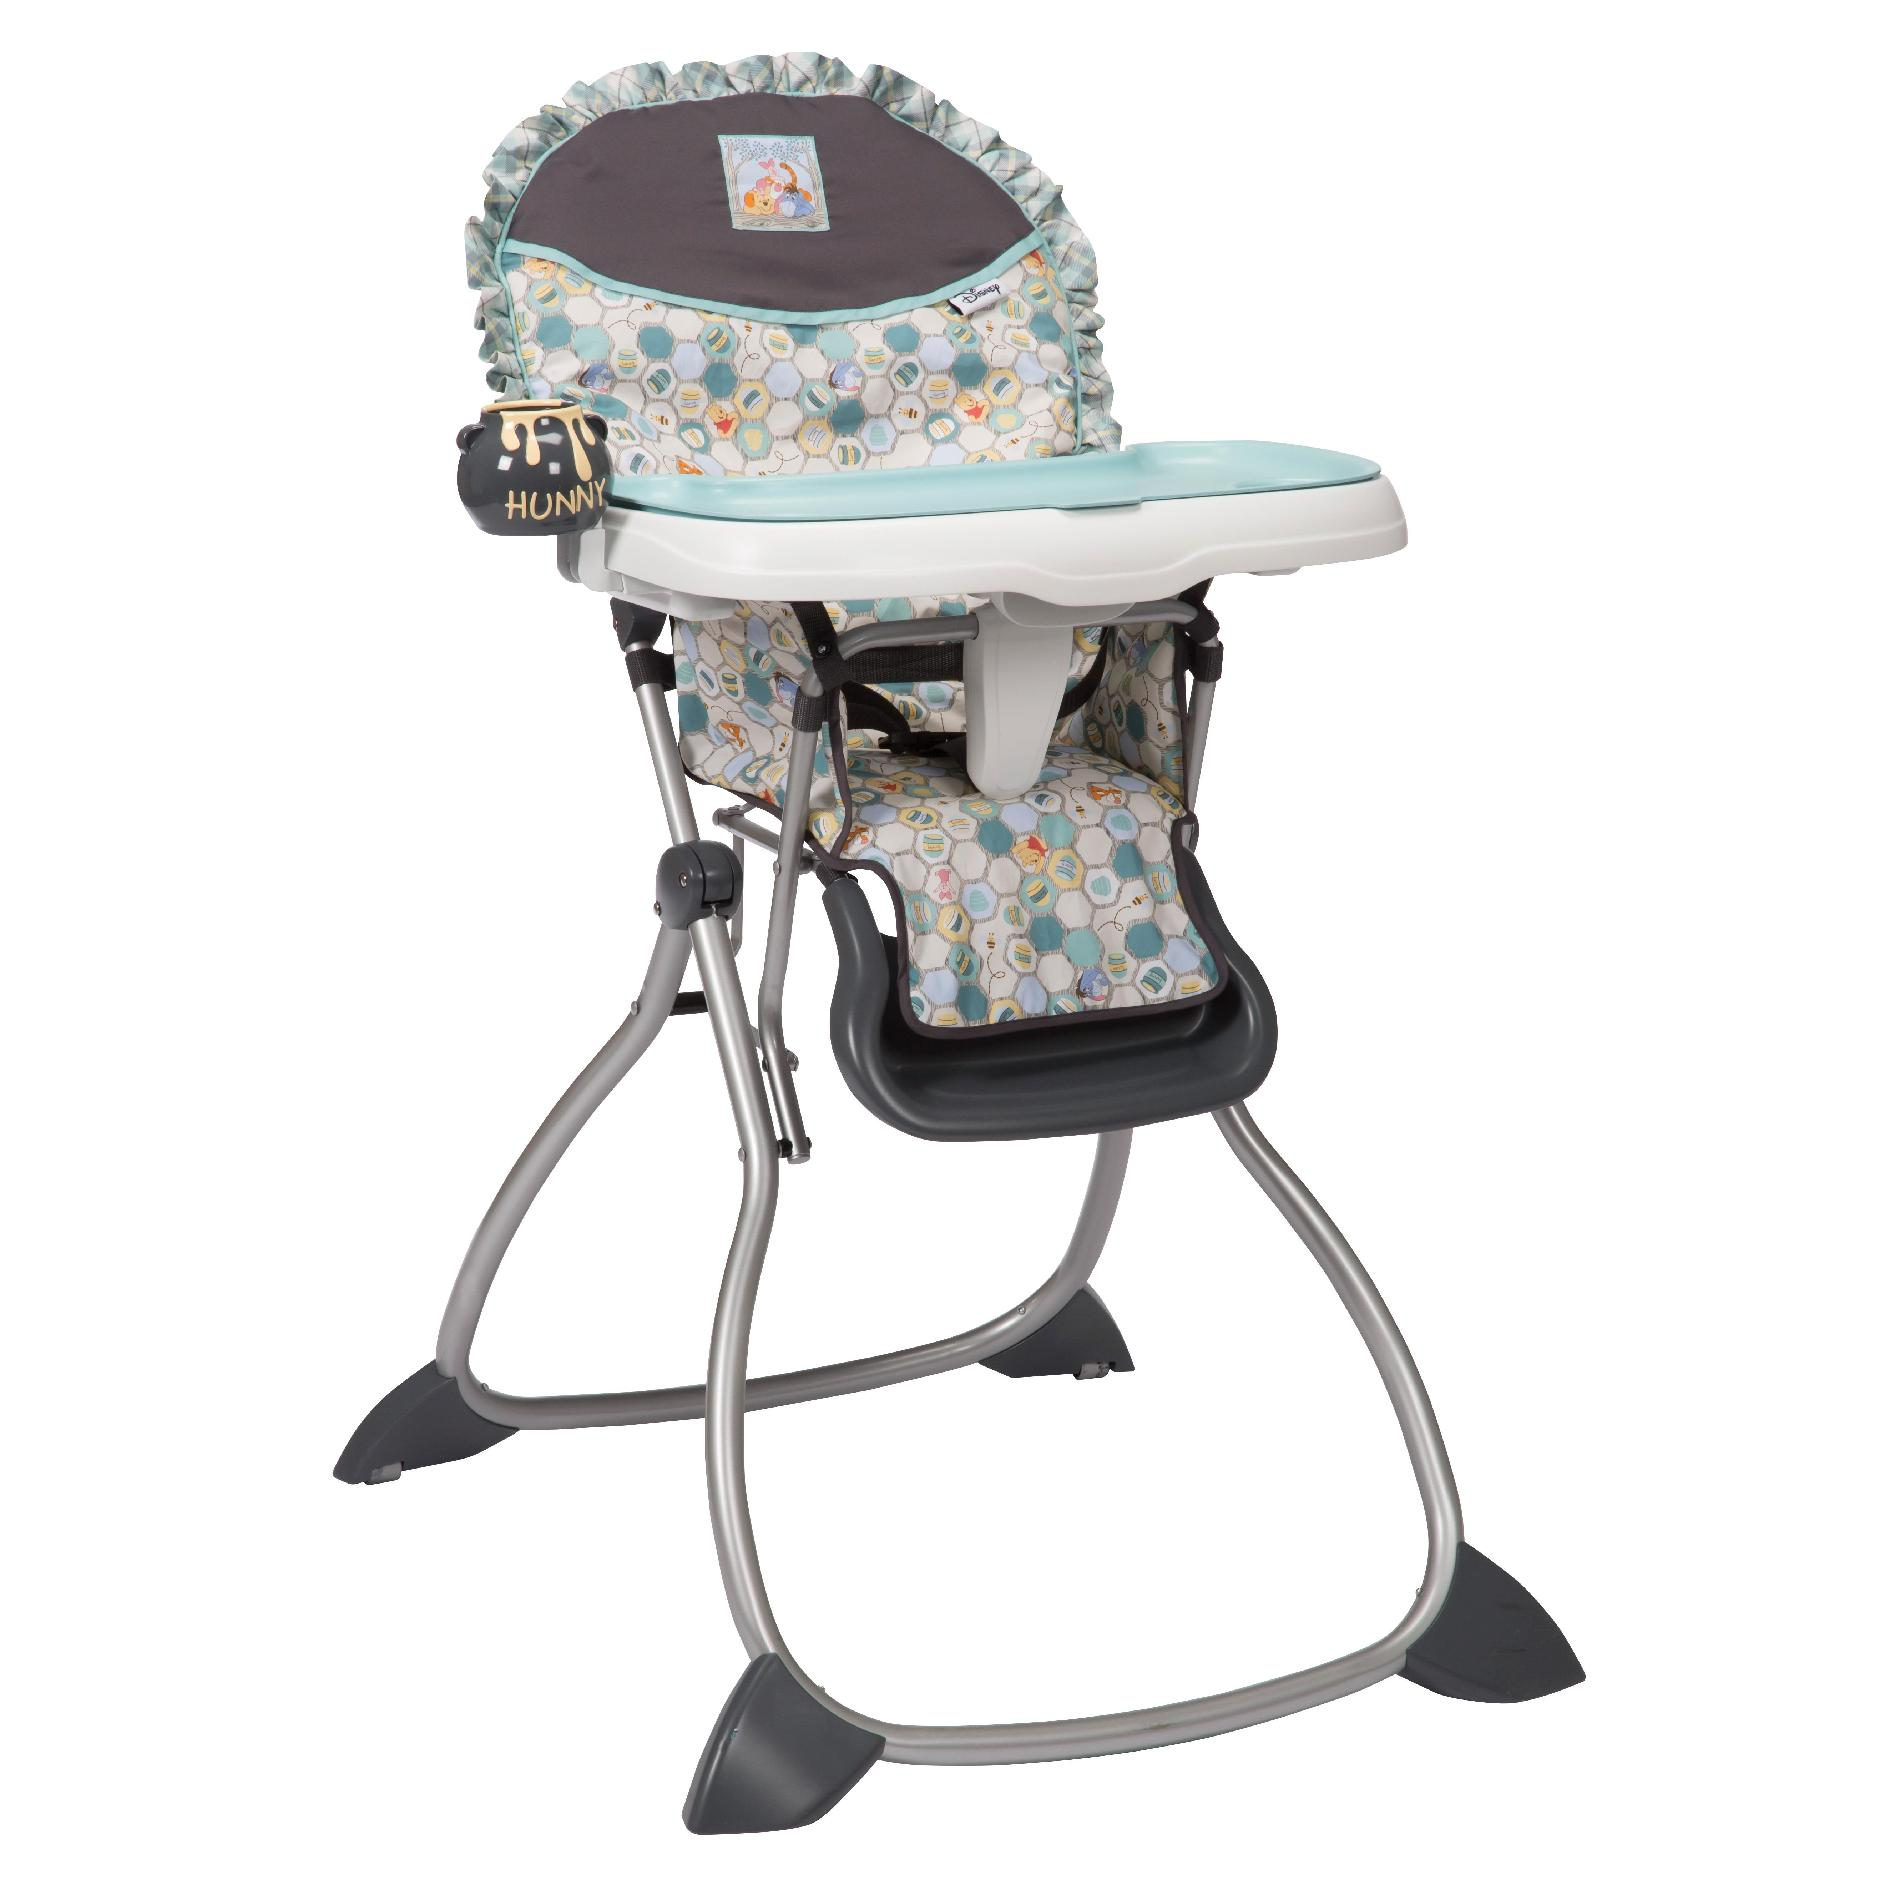 High Chair For Baby Boy Disney Fast Pack High Chair Home Sweet Home Pooh